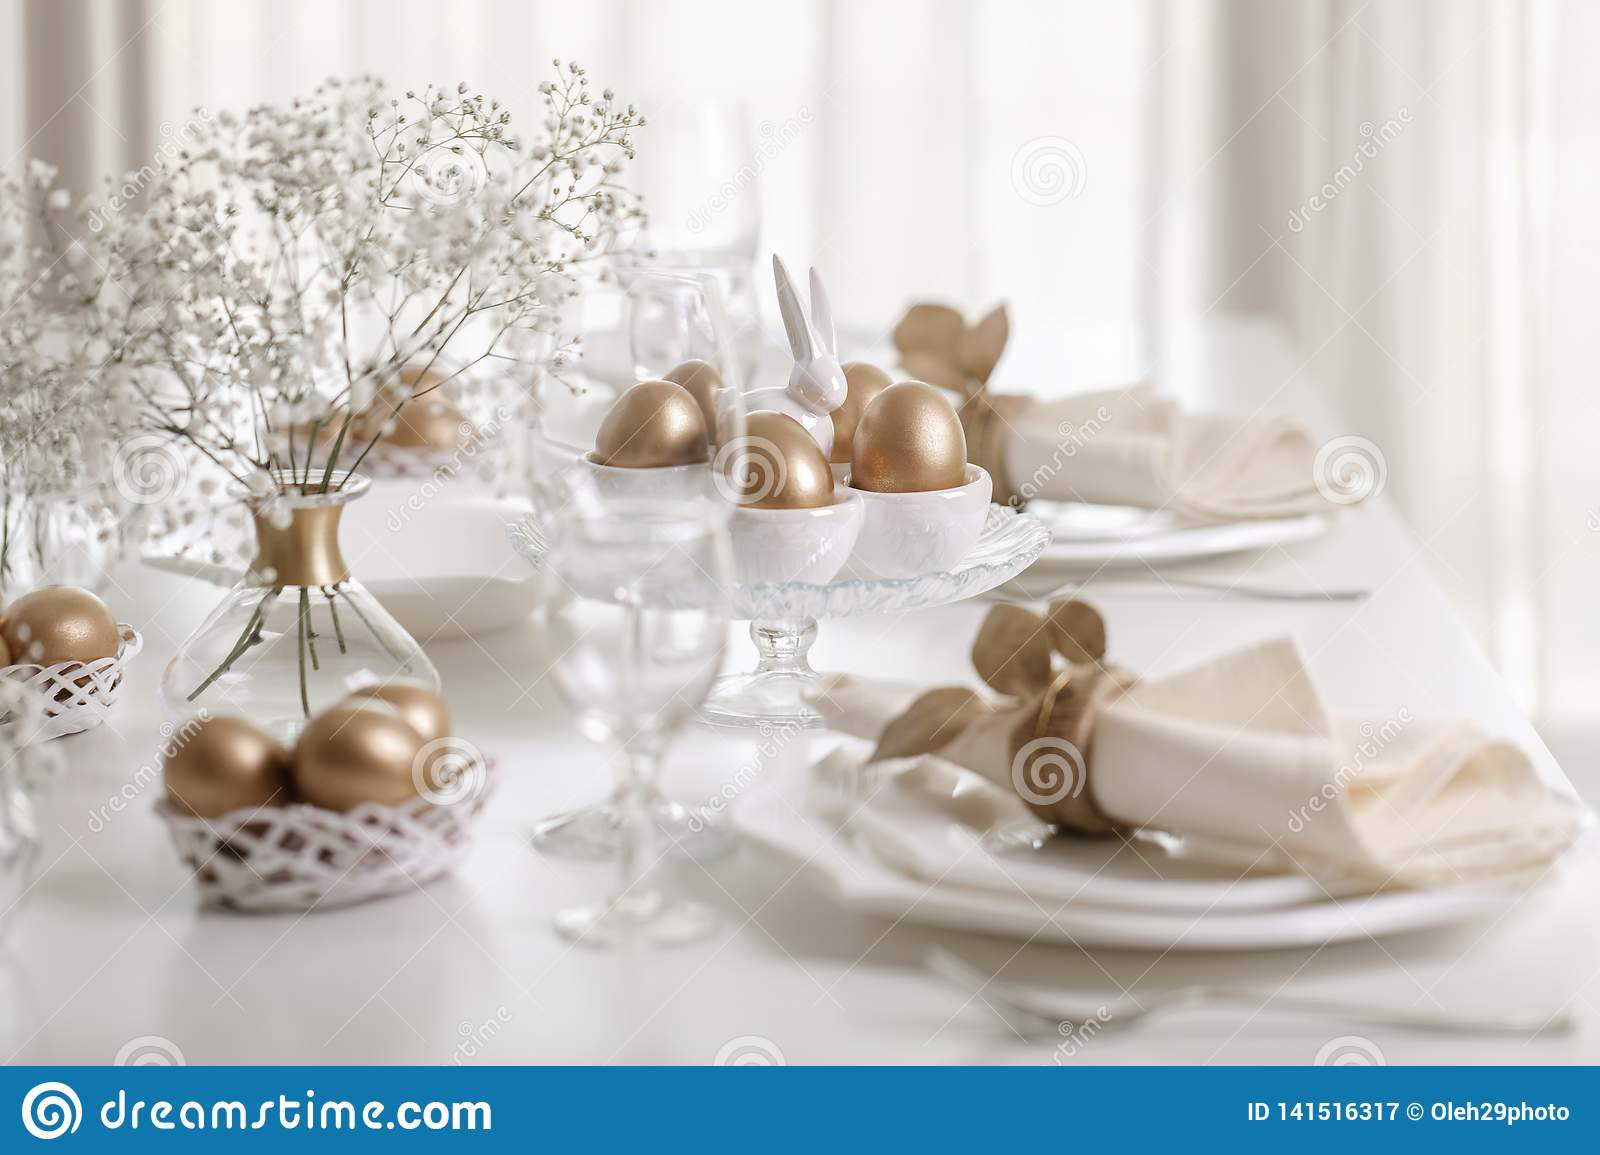 Happy Easter! Golden decor and table setting of the Easter table with white dishes of white color